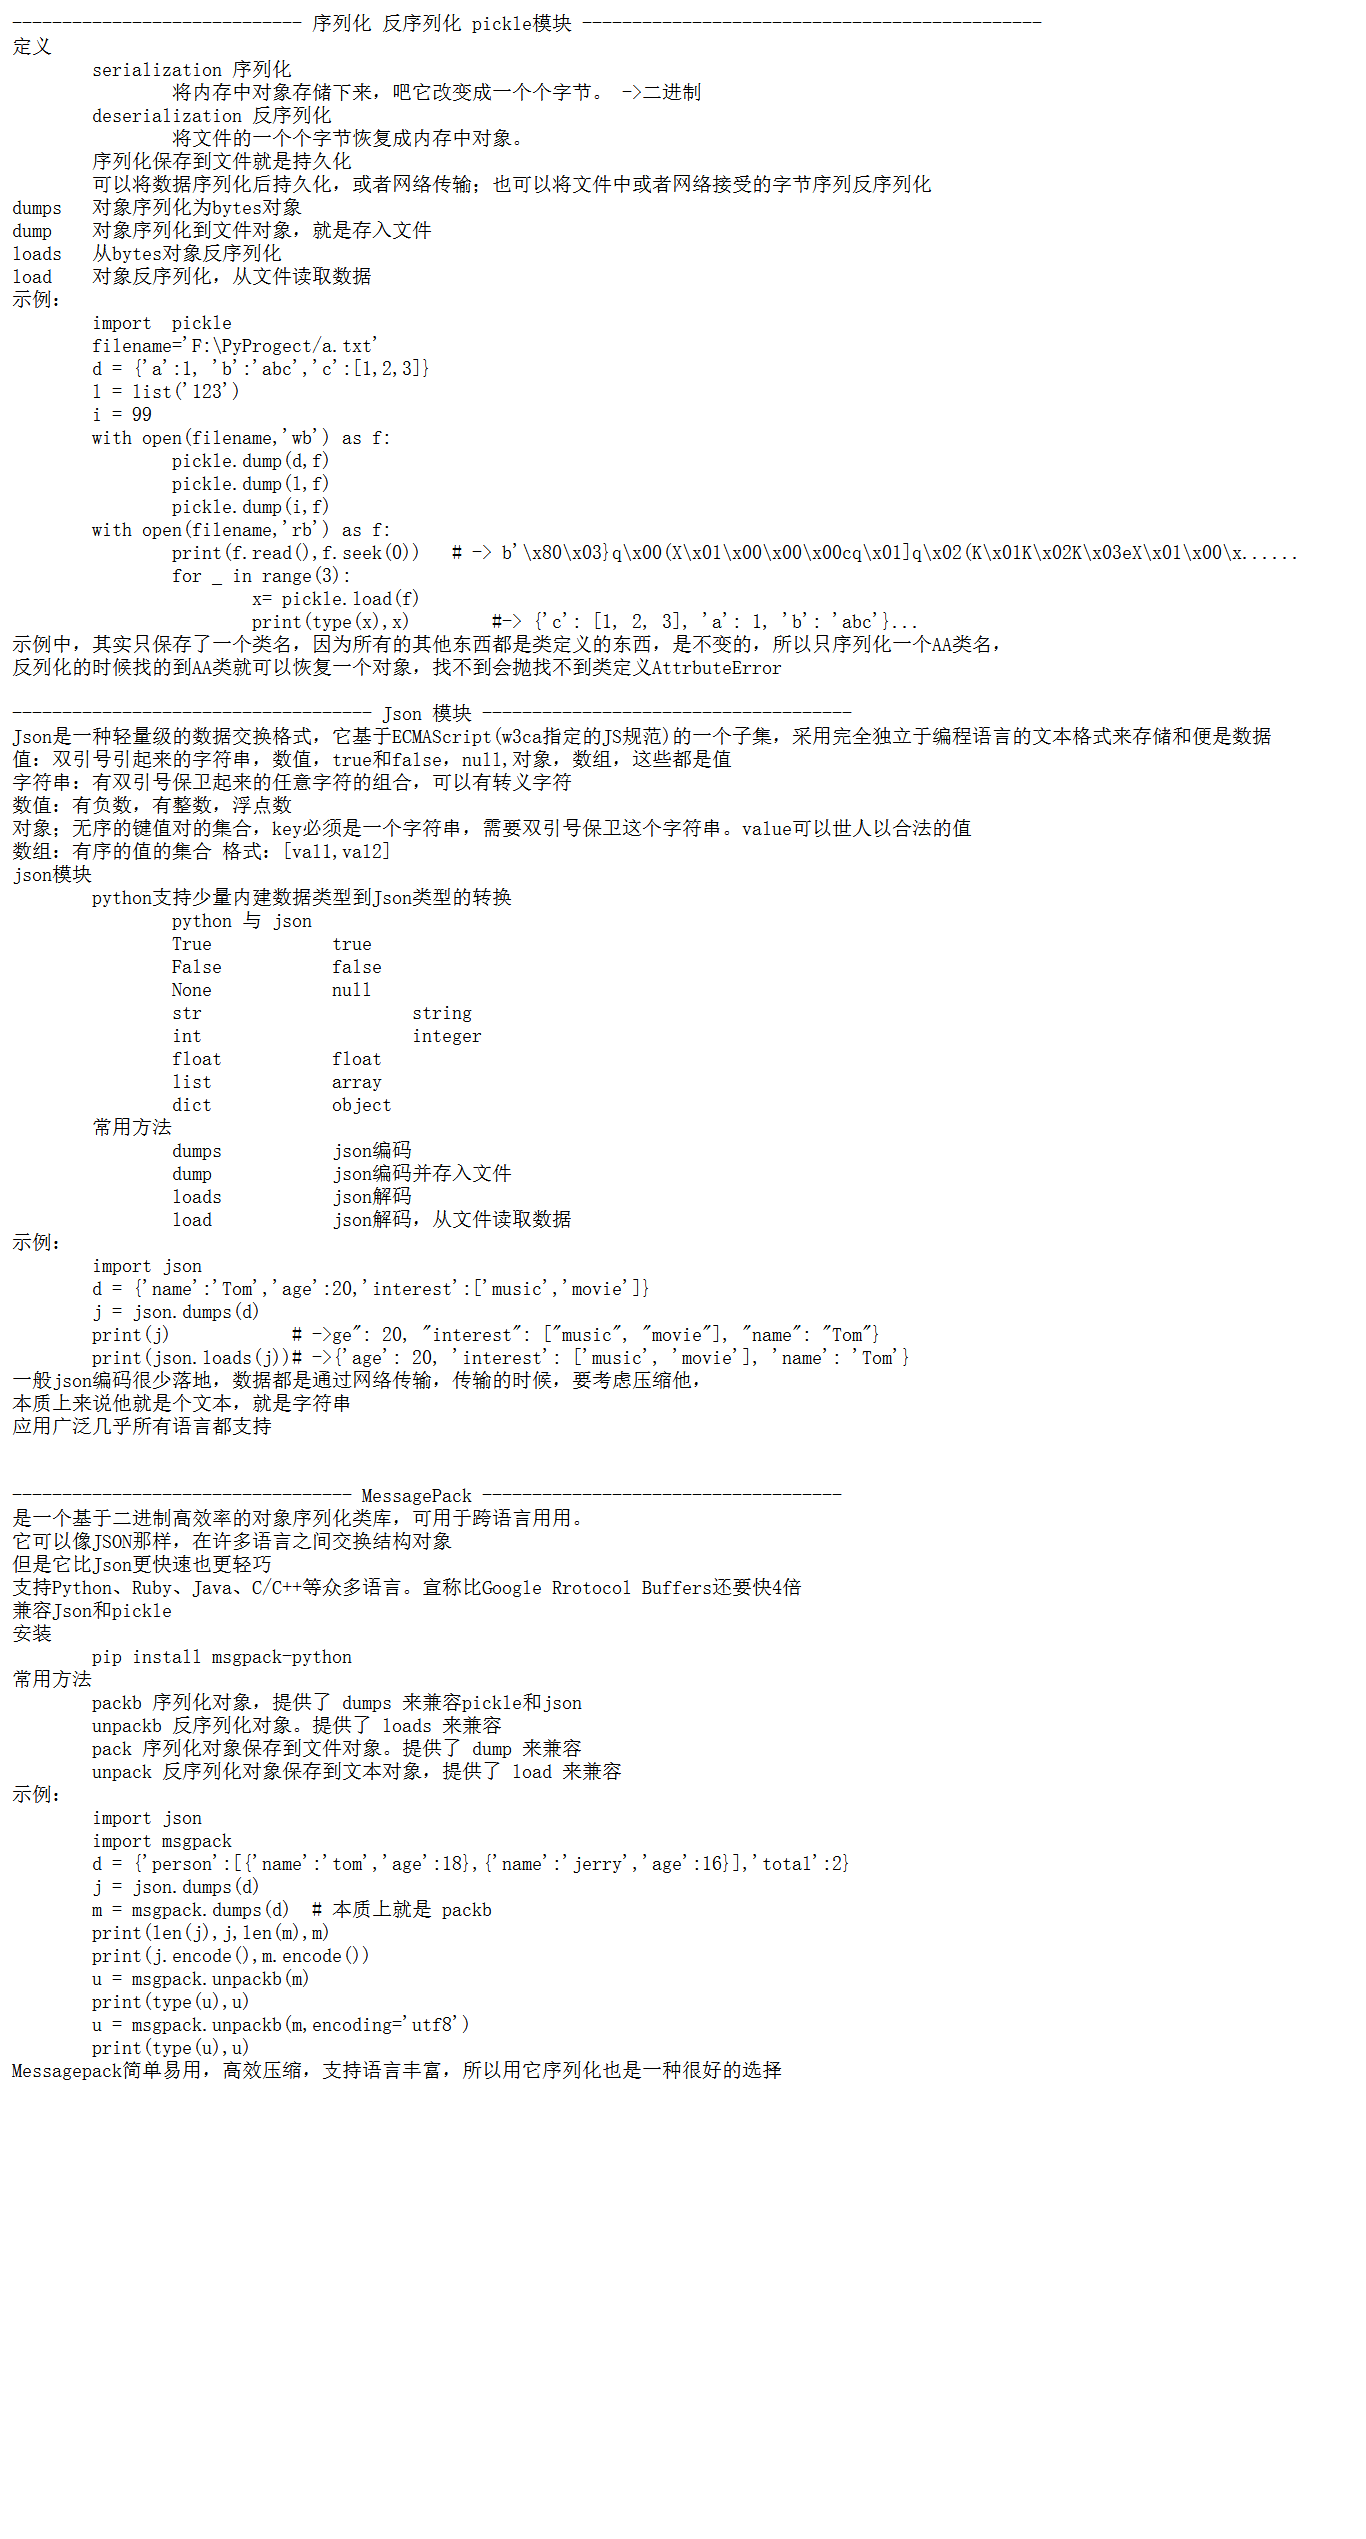 5.序列化 Json MessagePack.txt